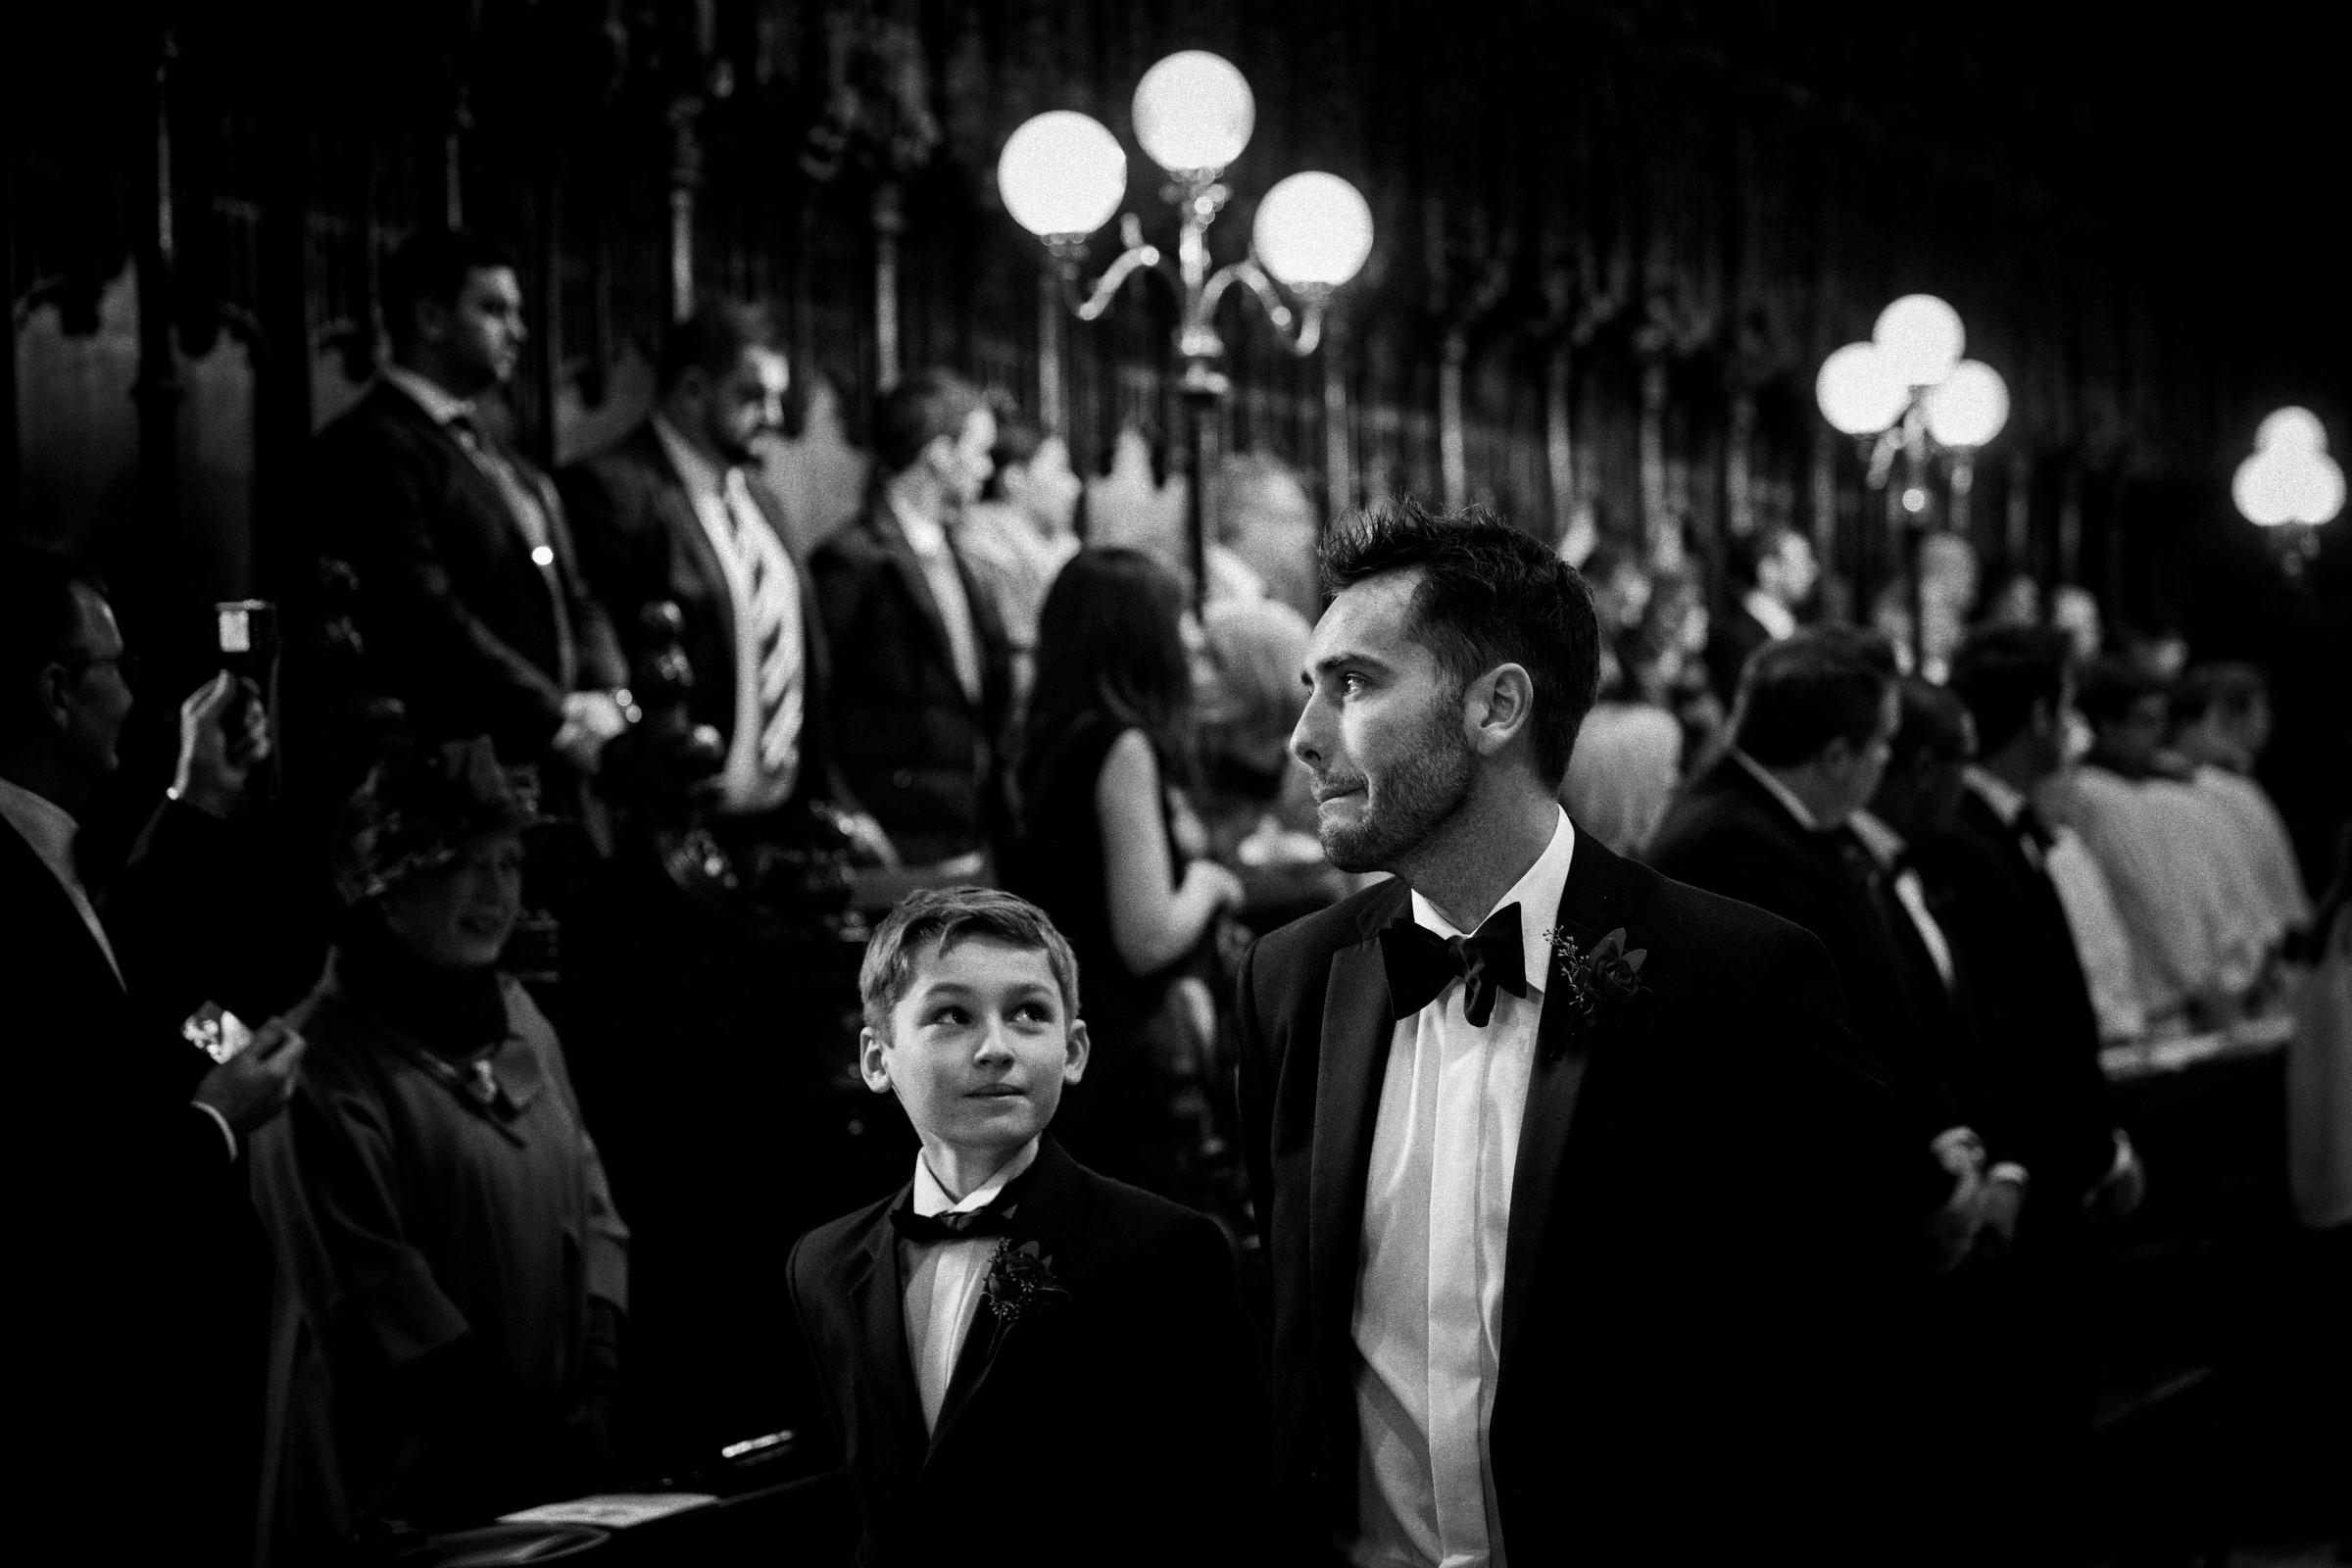 Boy looks up at his crying father during ceremony - documentary wedding photo by Jeff Ascough